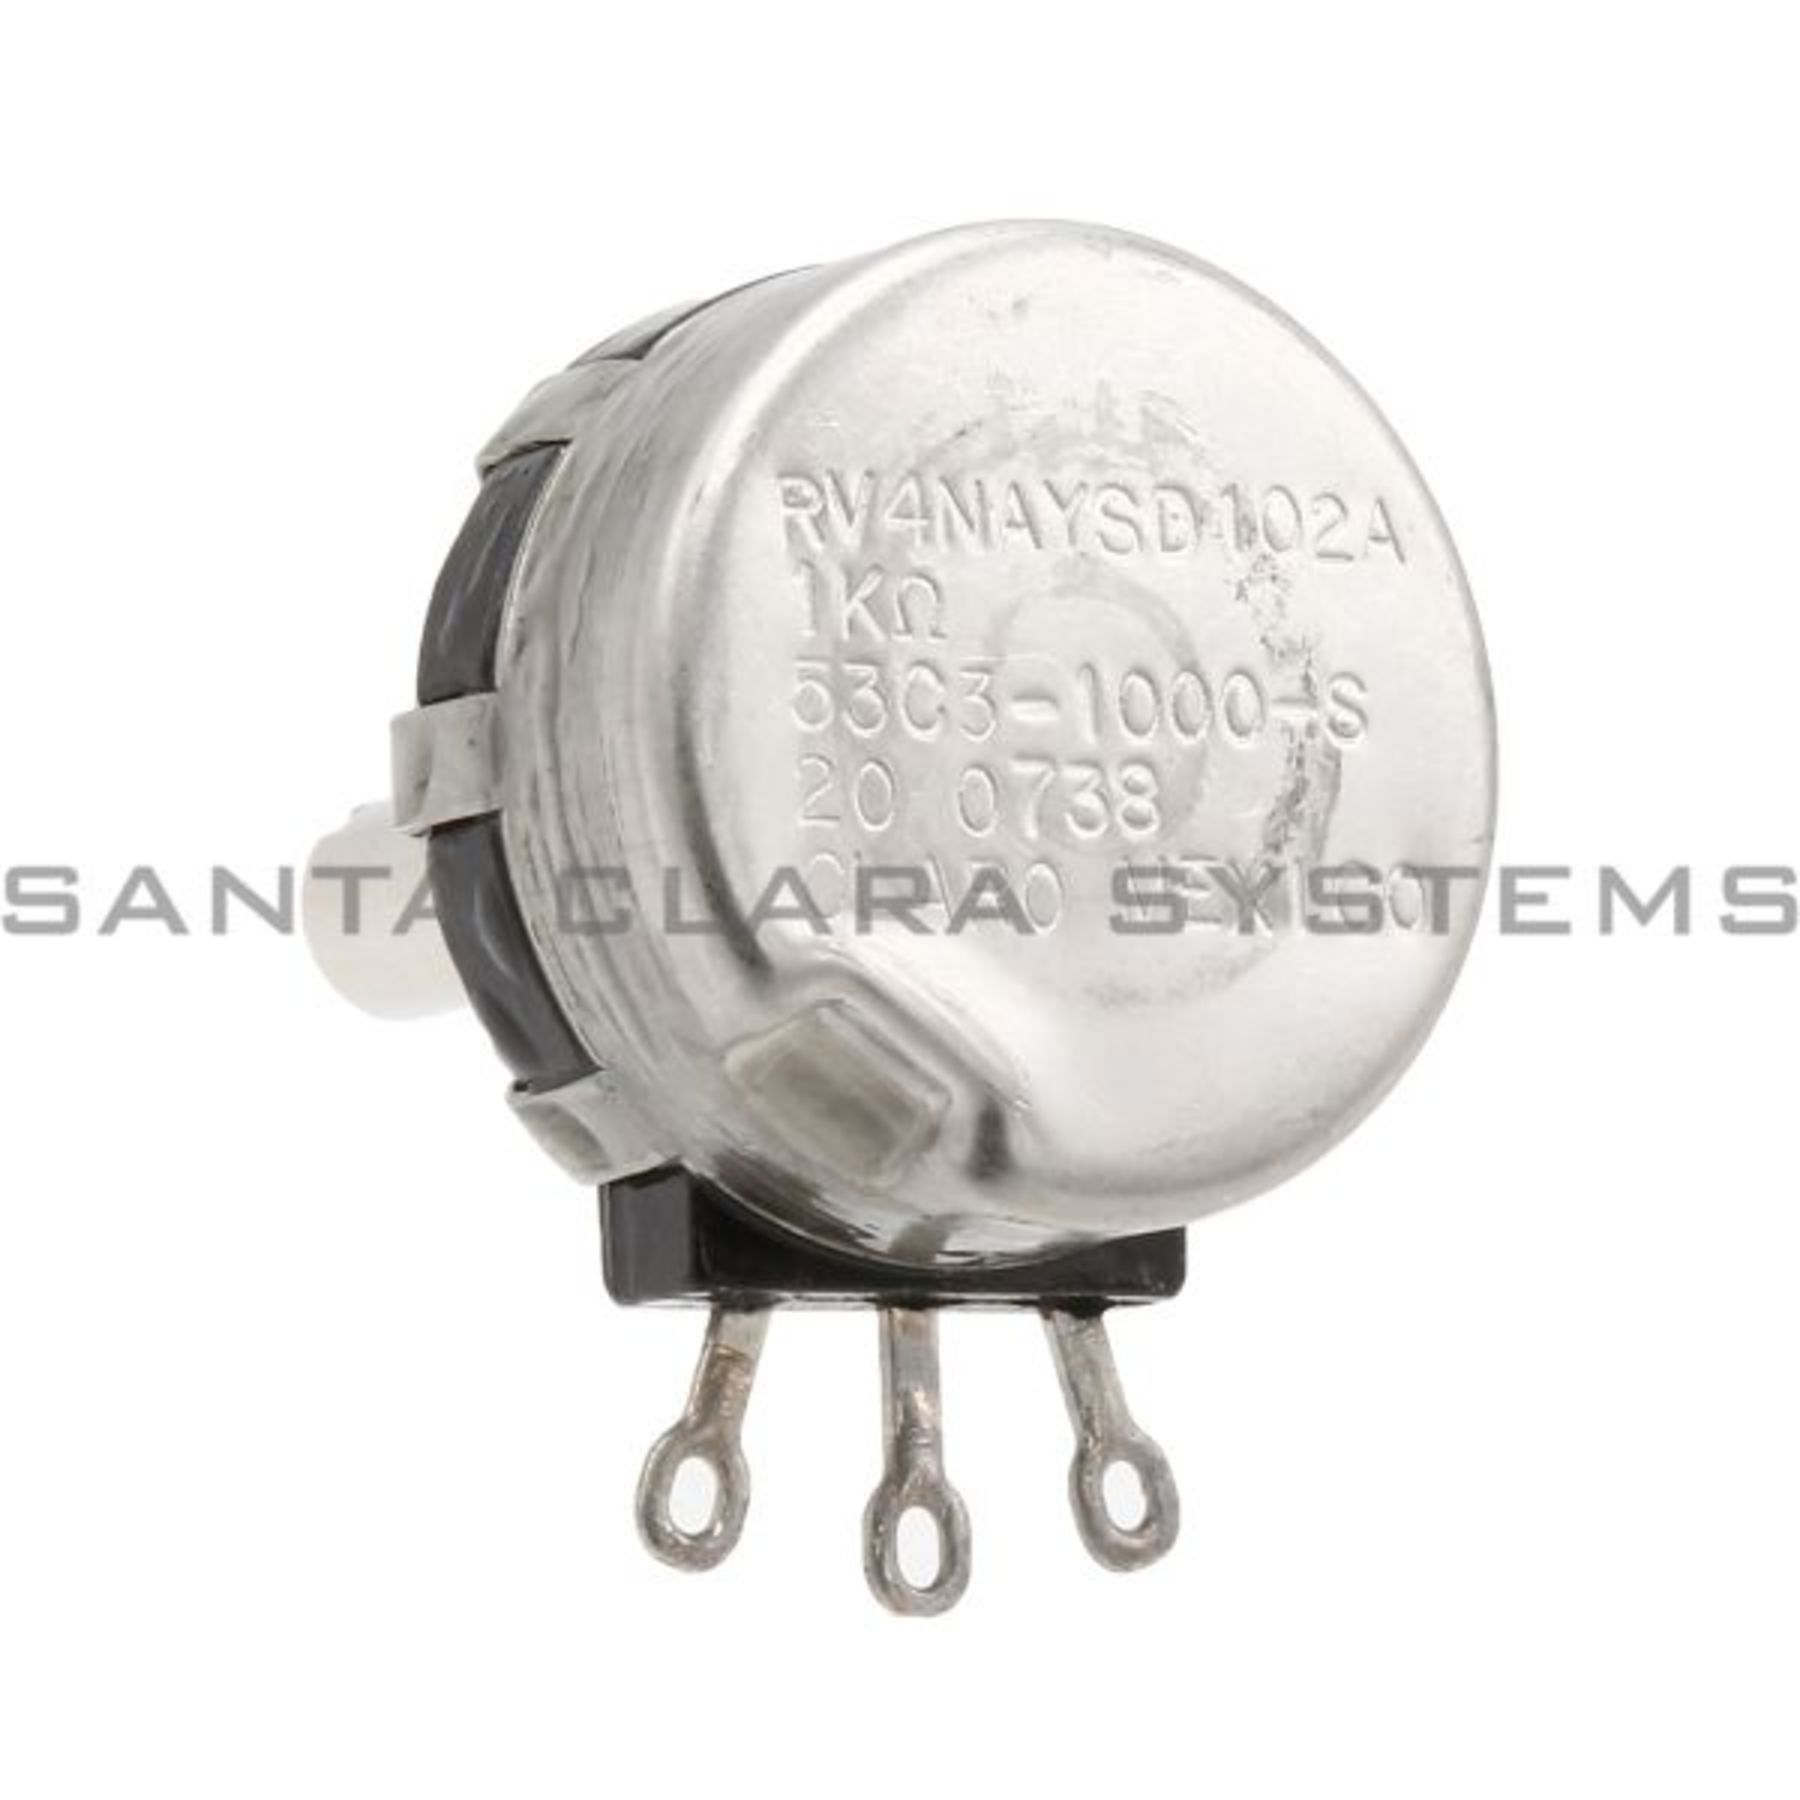 Rv4naysd102a Potentiometer 1kohm Type J In Stock Ships Today Clarostat Wiring Product Image